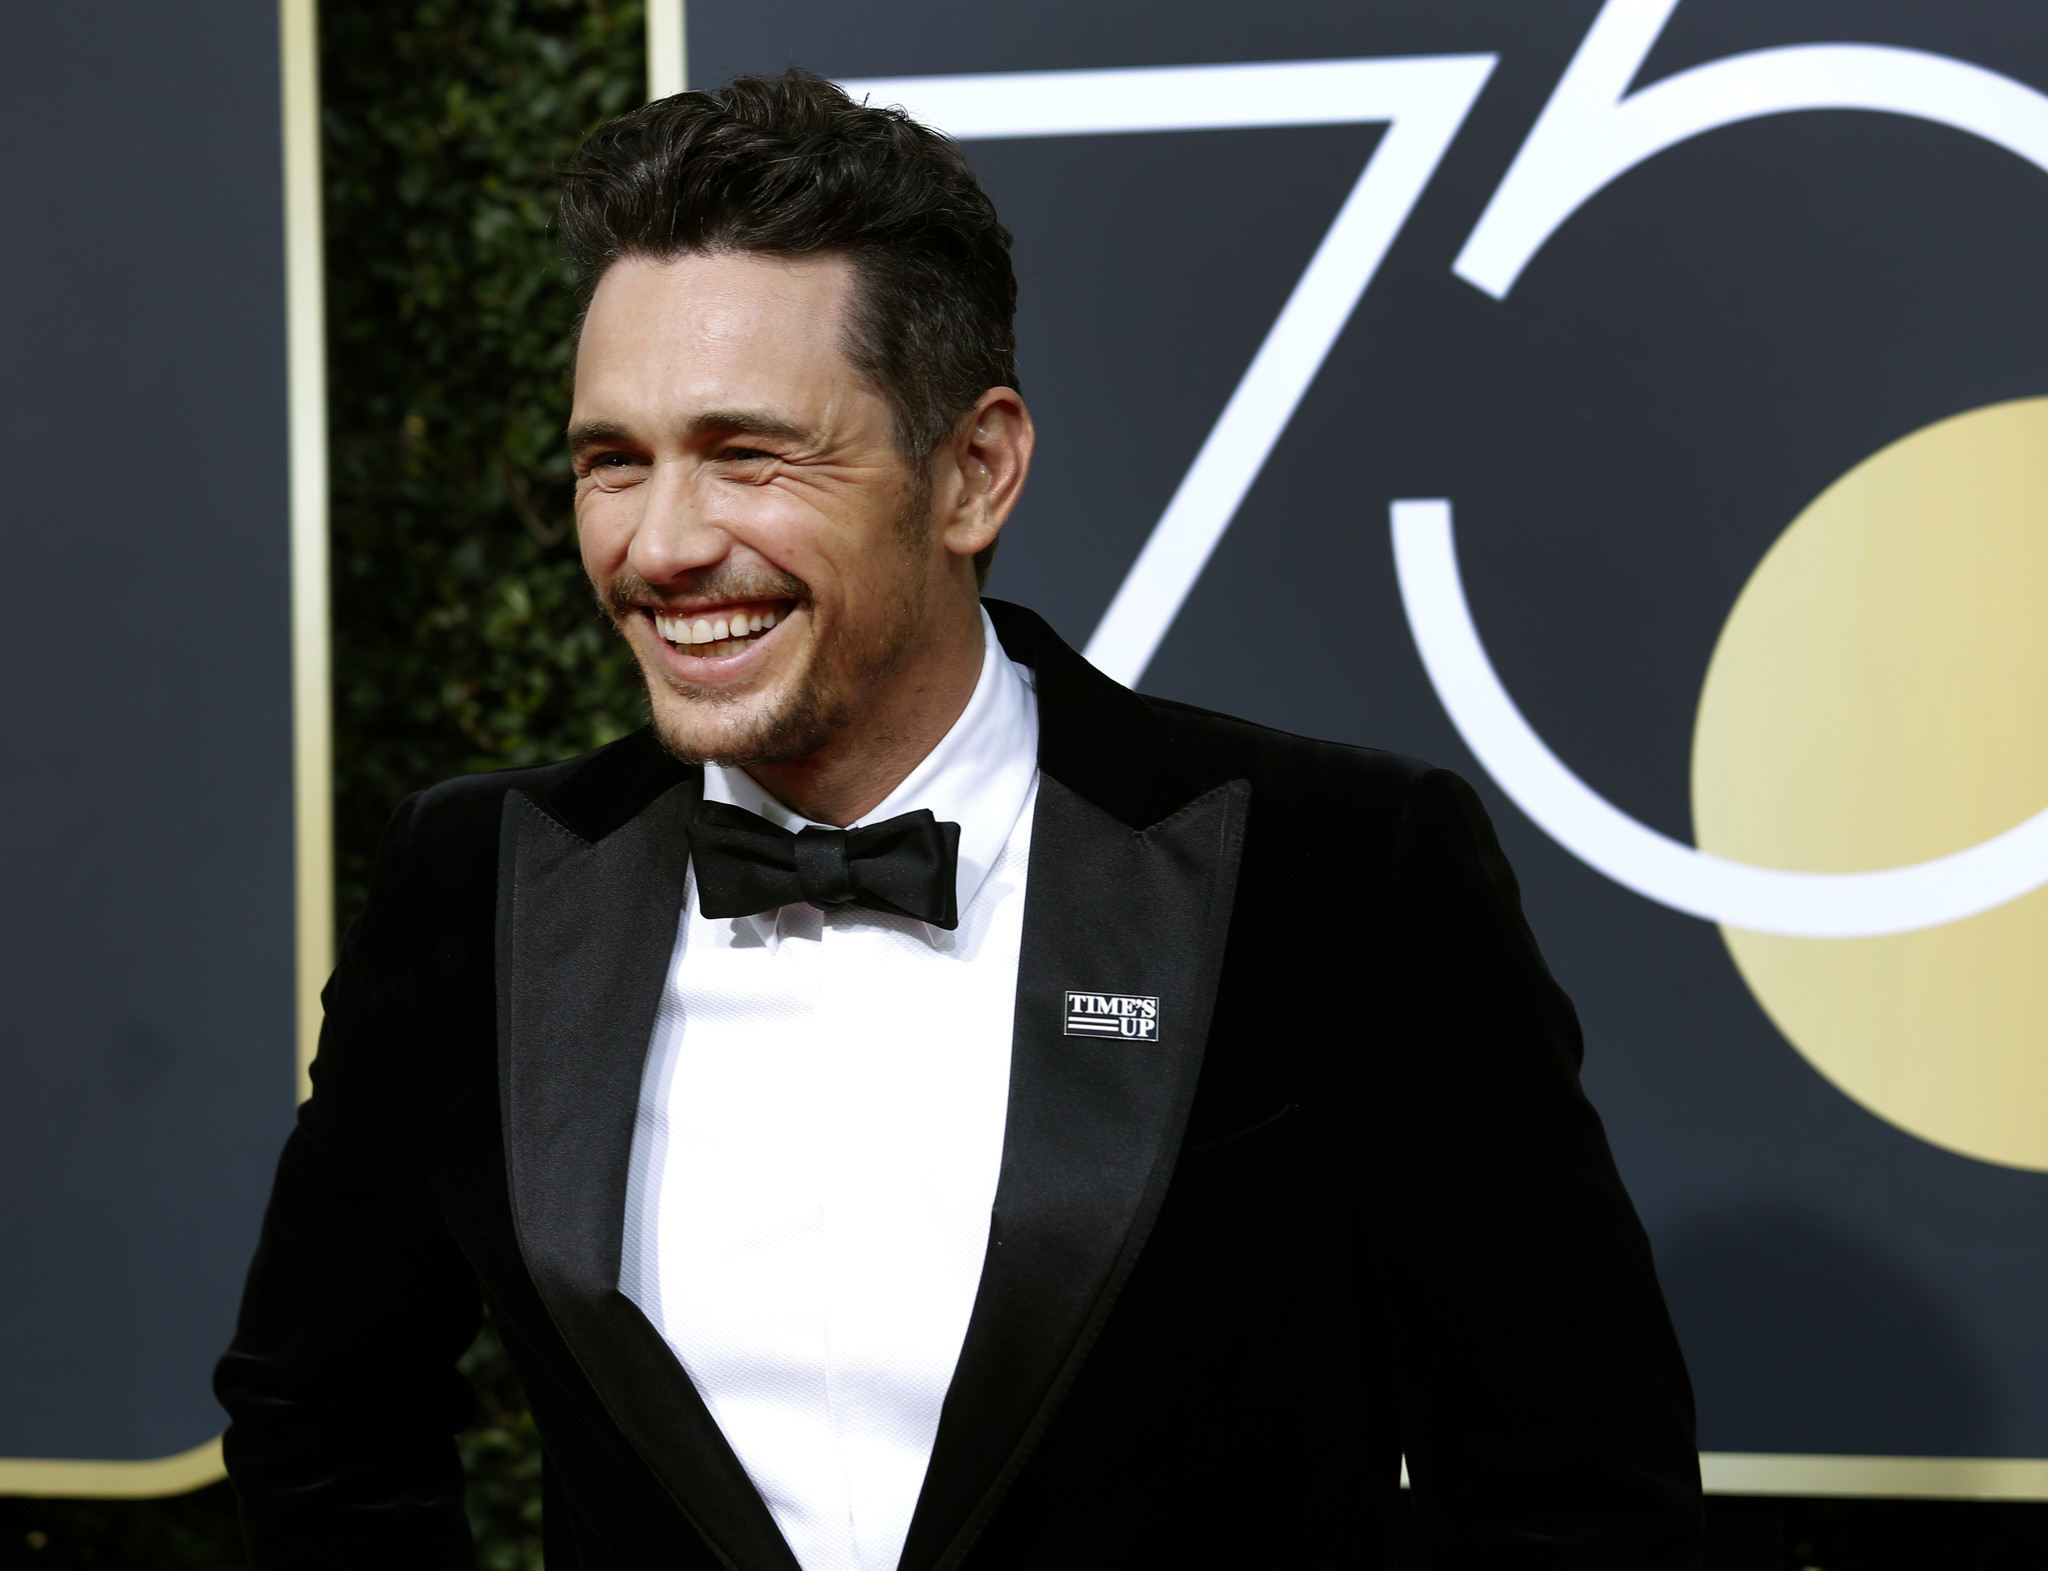 BEVERLY HILLS, CA - January 7, 2018-James Franco appears at the Golden Globe Awards wearing a Time's